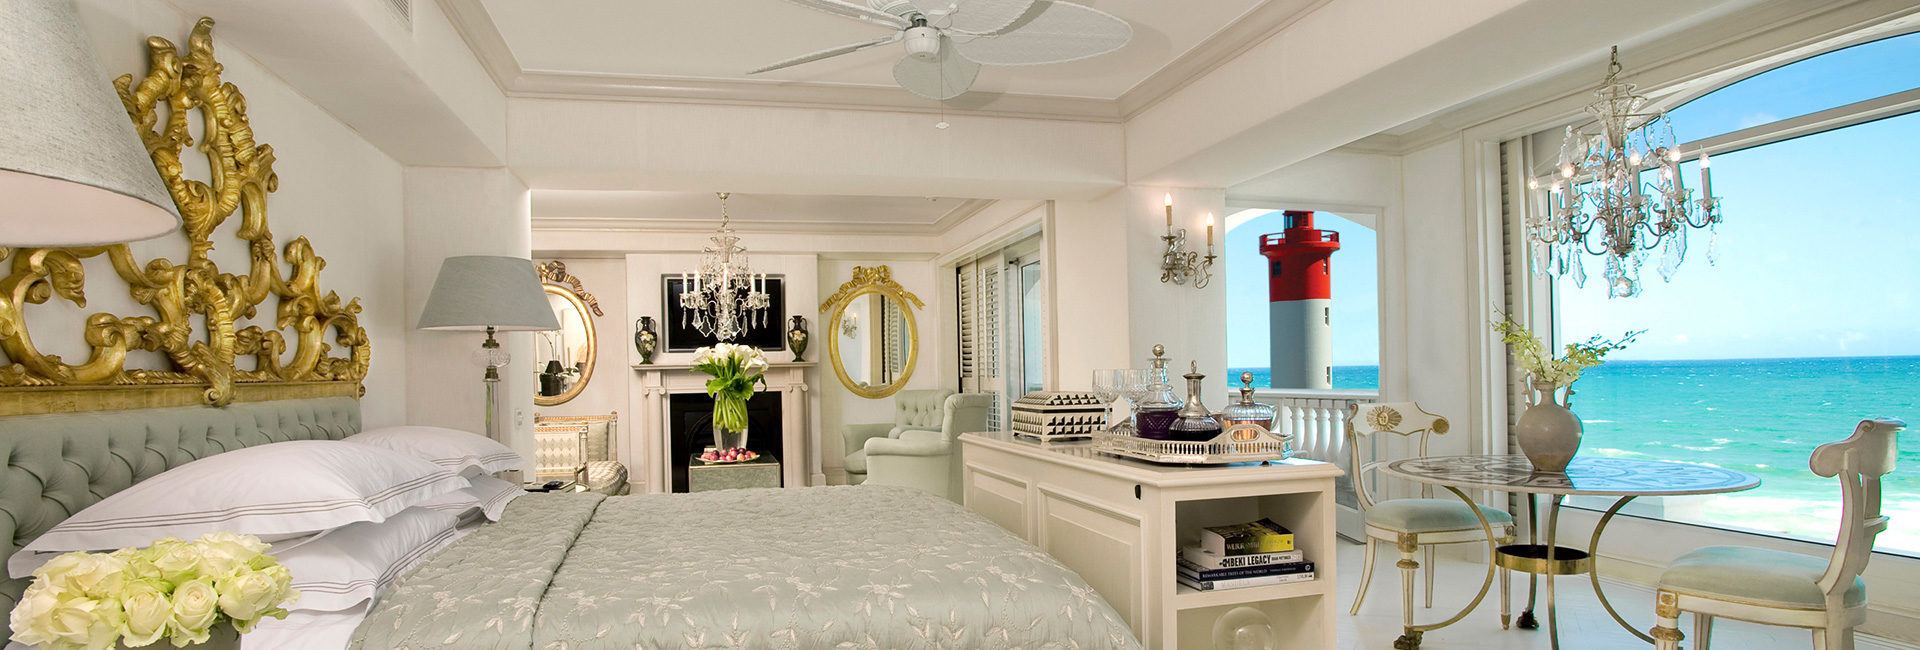 Feel like Royalty in luxurious rooms